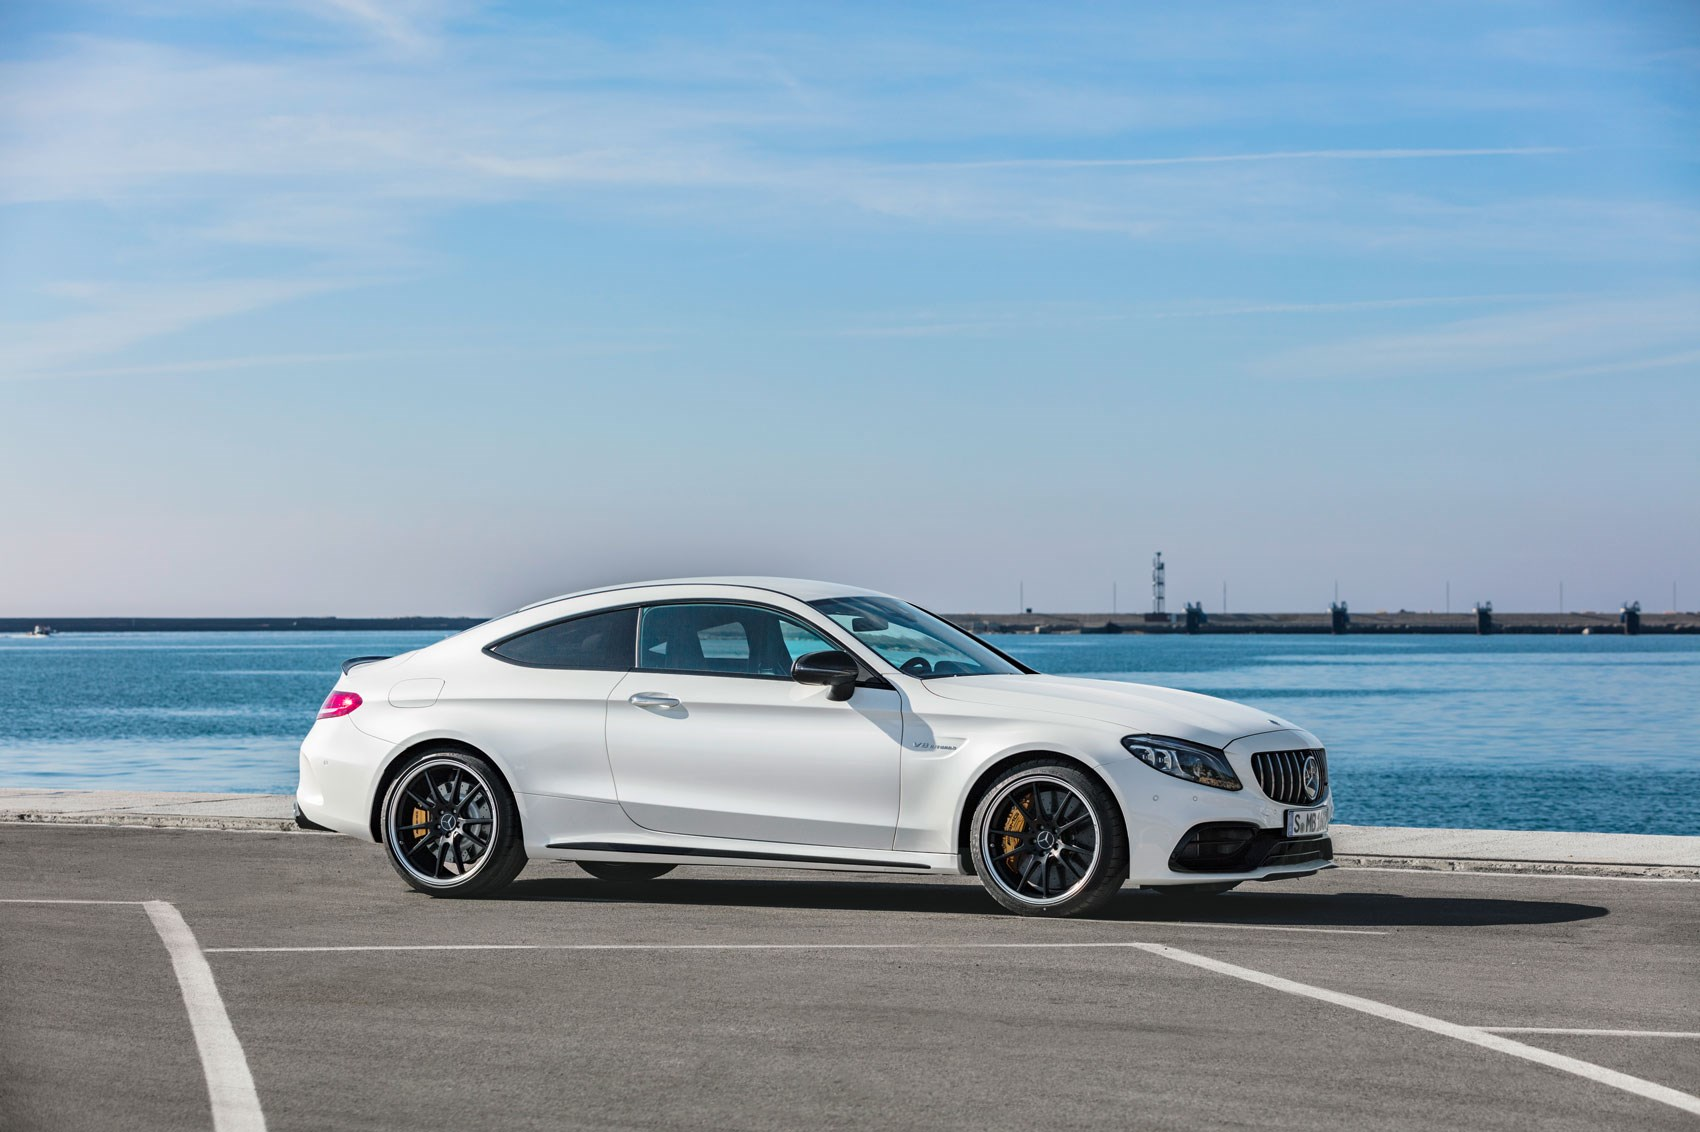 Mercedes Amg Mercedes Amg C63 And Amg C63 S Uk Prices For Facelift Revealed